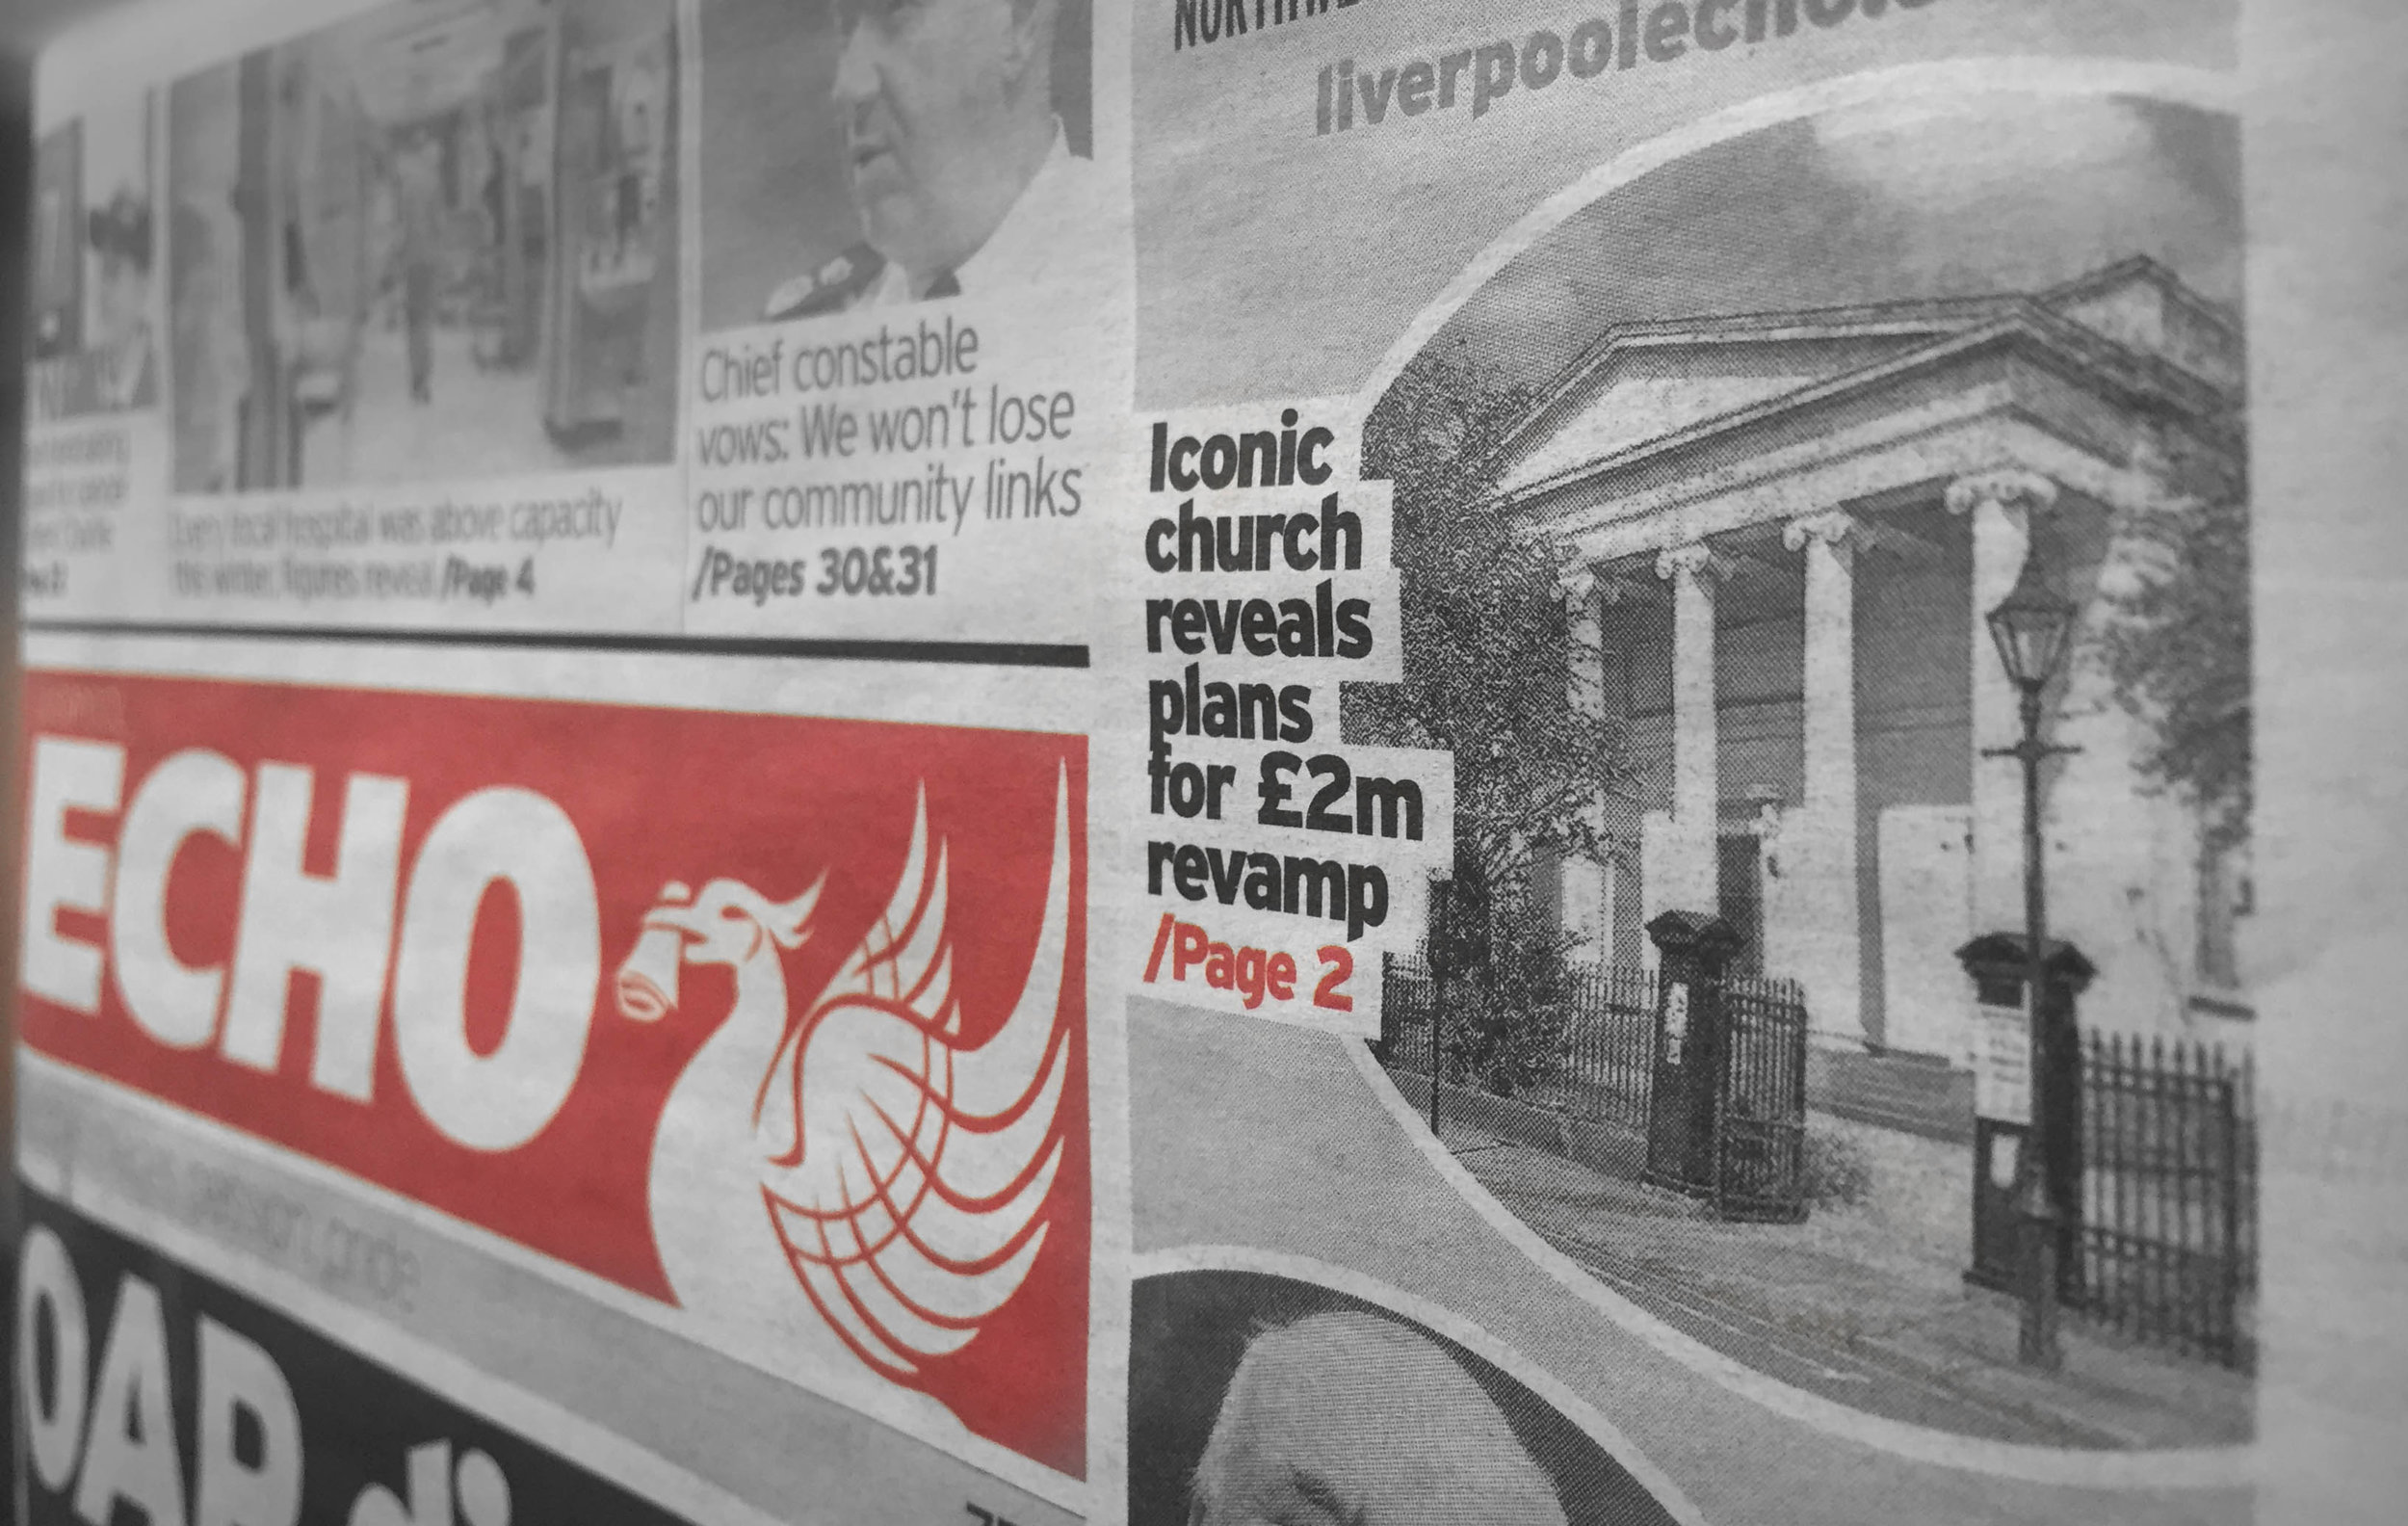 St Brides Liverpool Echo